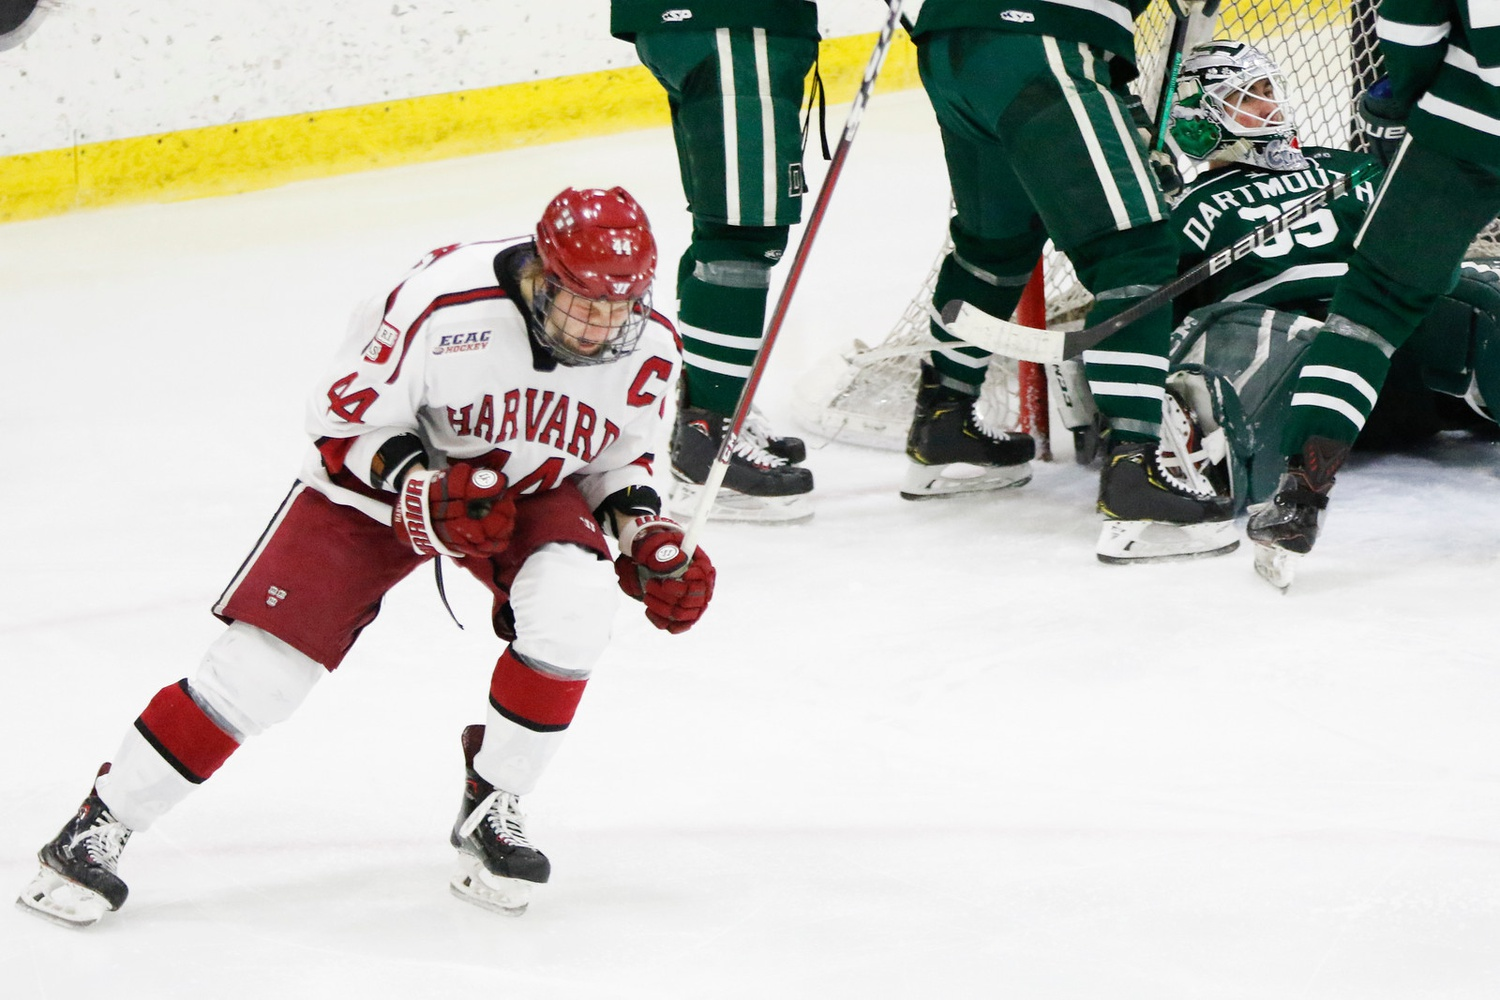 Co-captains Michael Floodstrand (pictured here) and Lewis Zerter-Gossage set examples on and off the ice this weekend in the Crimson's 2-0 series sweep of the Big Green.